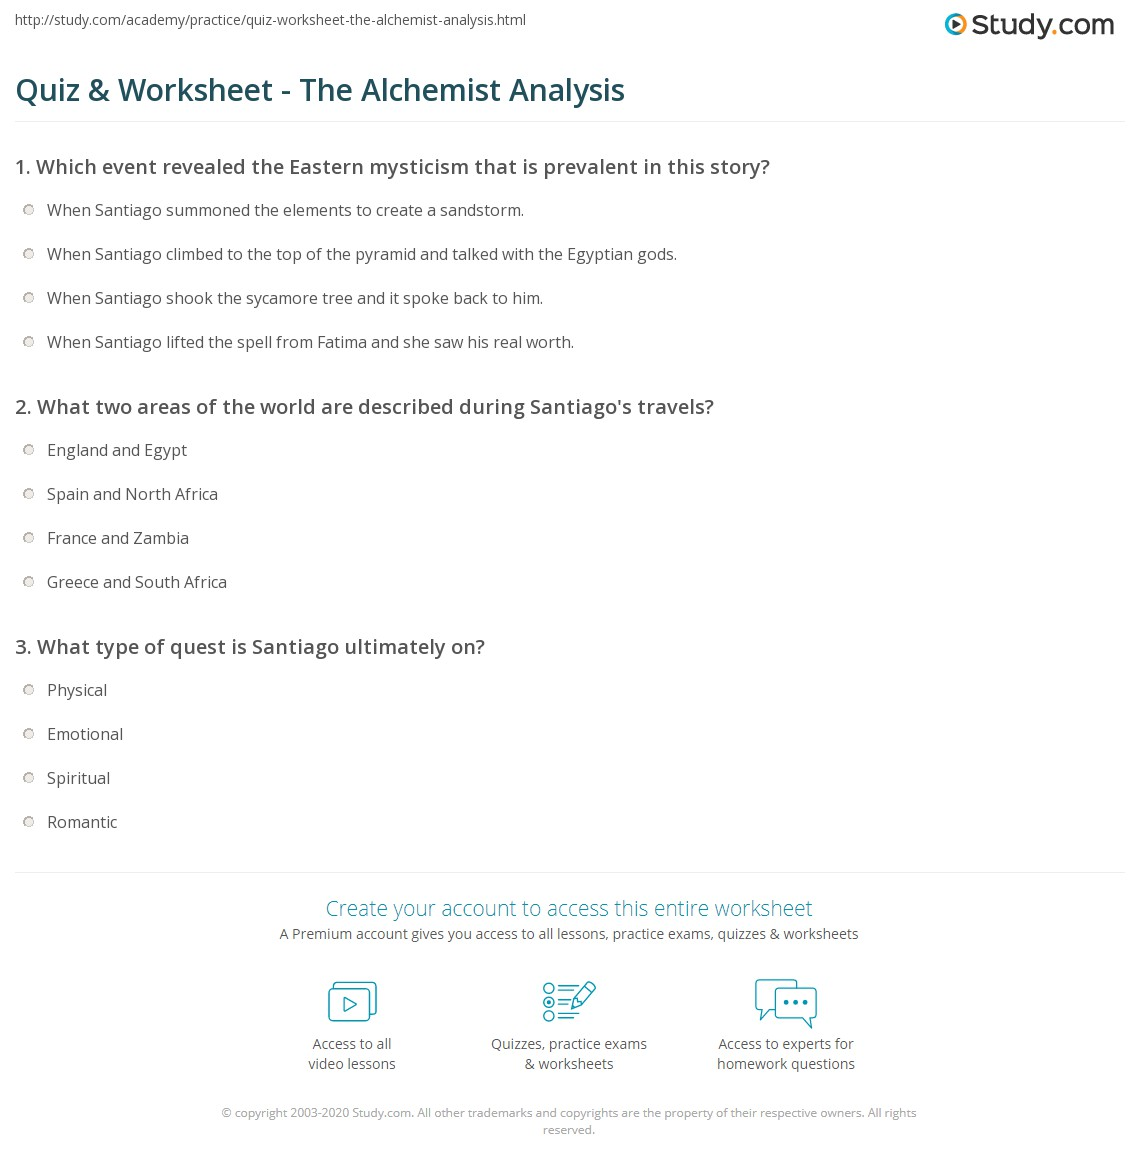 quiz worksheet the alchemist analysis com print the alchemist analysis worksheet